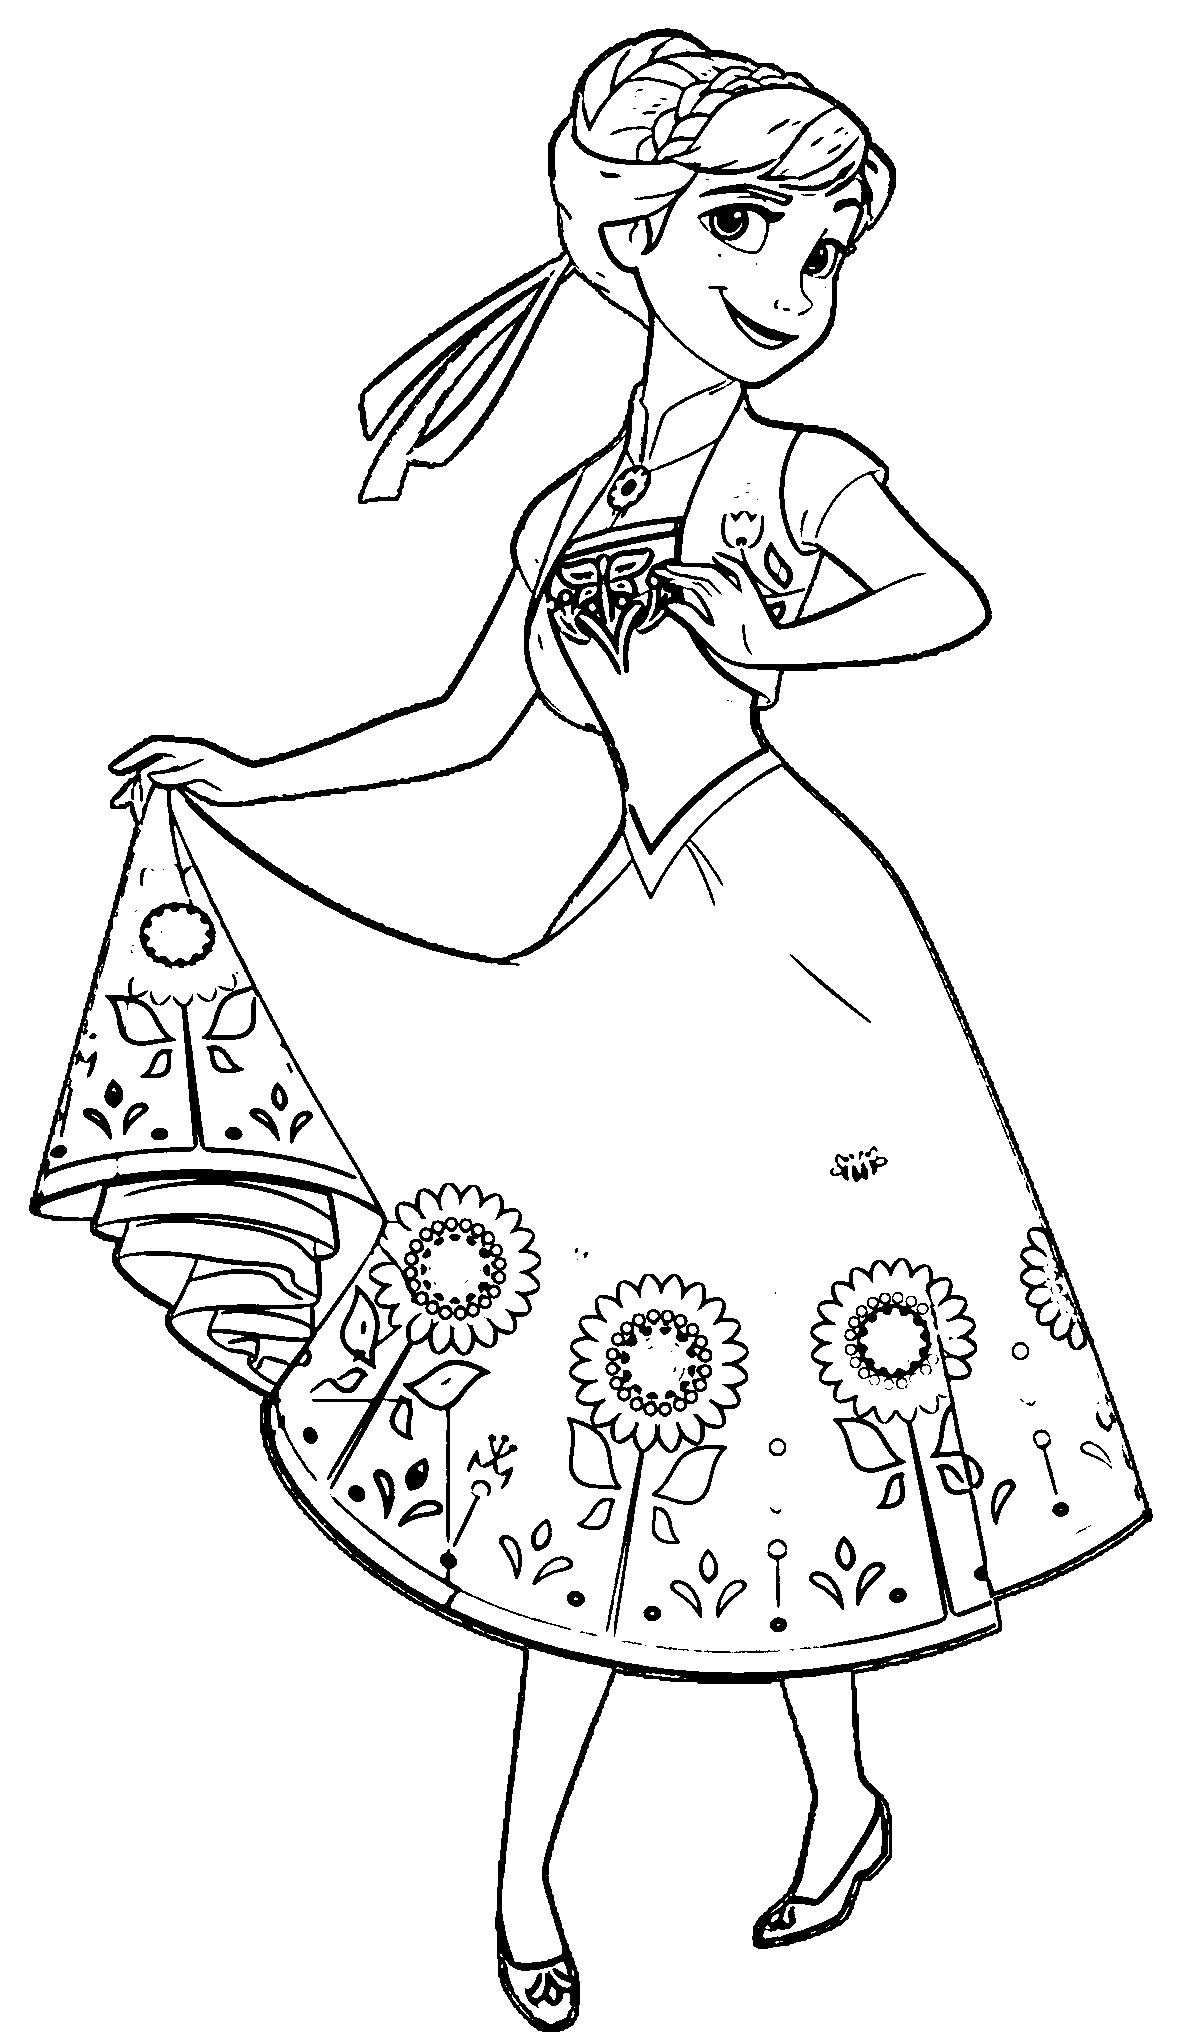 coloring sheets elsa and anna elsa and anna coloring pages printable at getcoloringscom anna coloring and elsa sheets